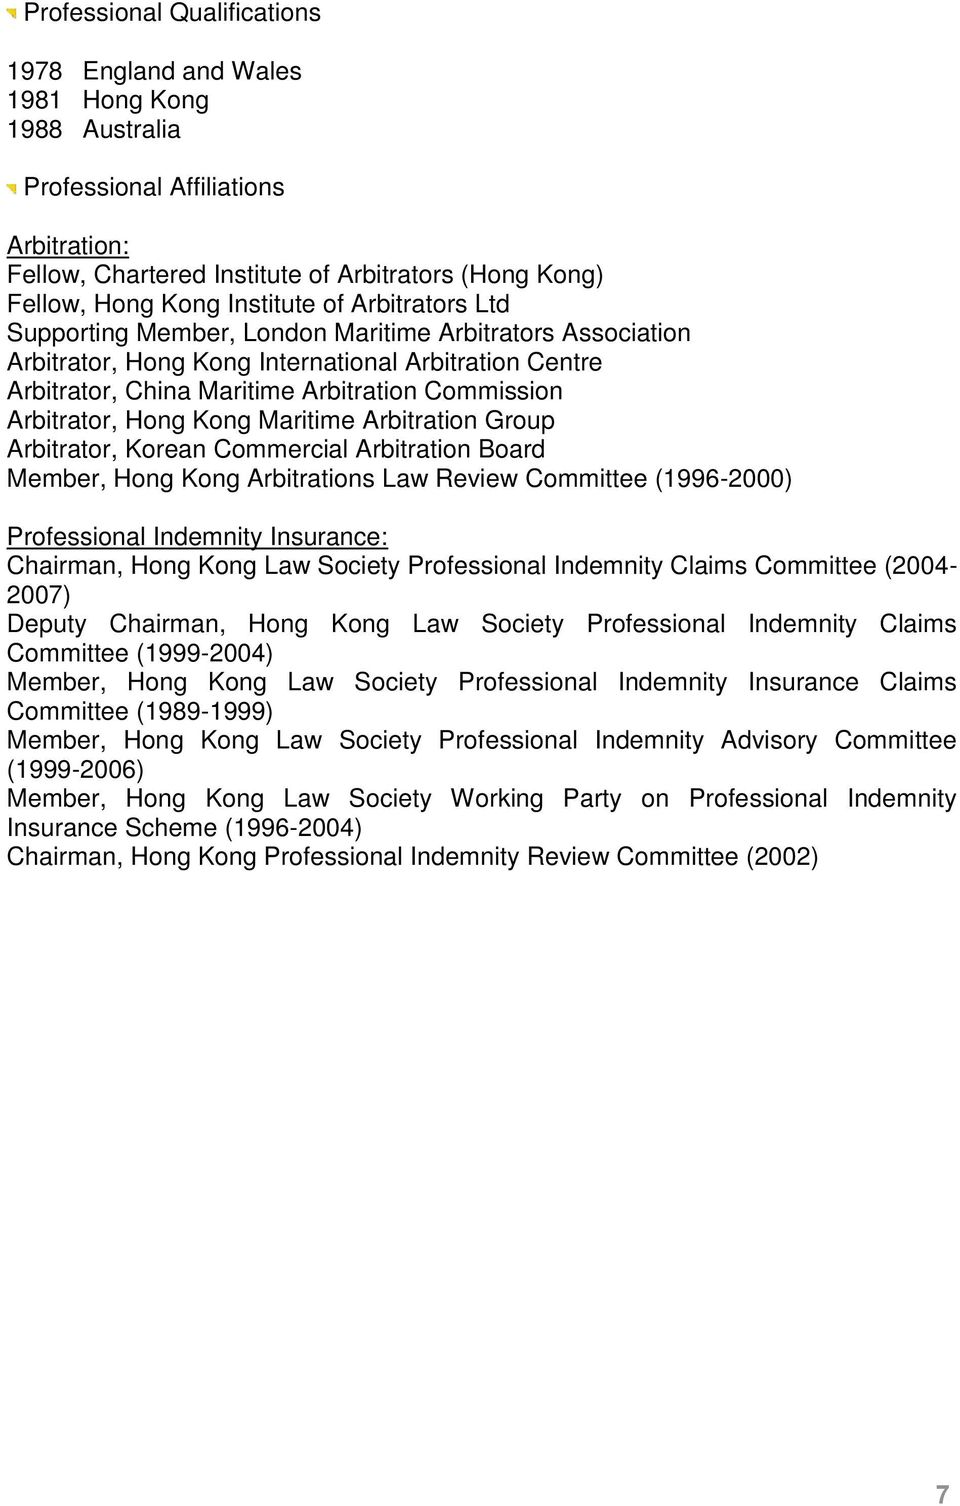 Arbitrator, Hong Kong Maritime Arbitration Group Arbitrator, Korean Commercial Arbitration Board Member, Hong Kong Arbitrations Law Review Committee (1996-2000) Professional Indemnity Insurance: